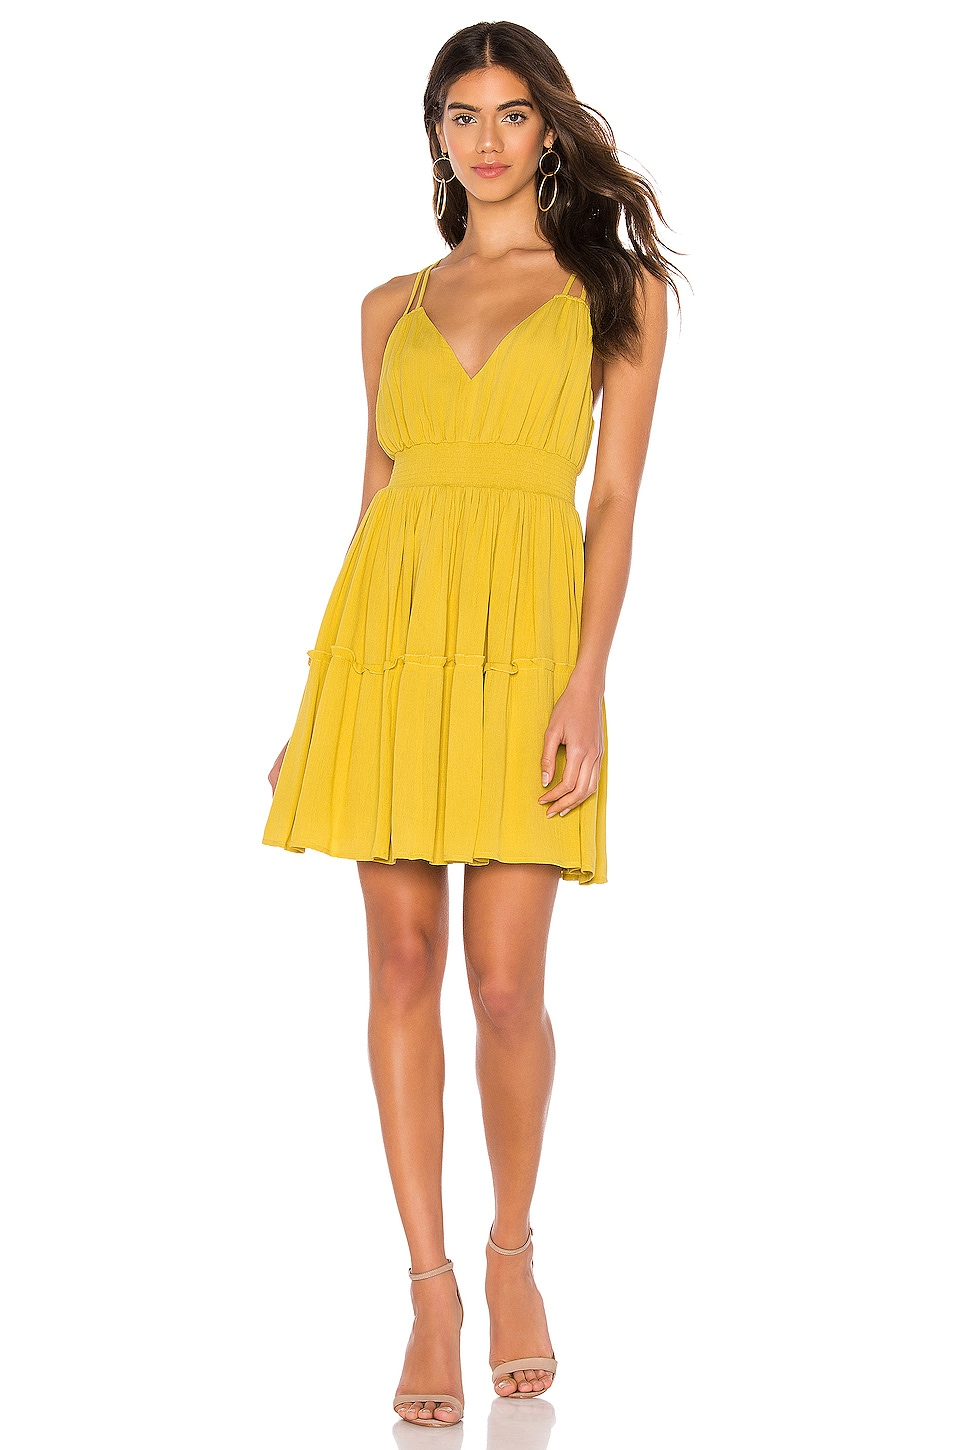 BB Dakota JACK by BB Dakota Steal My Sunshine Dress in Tuscan Gold